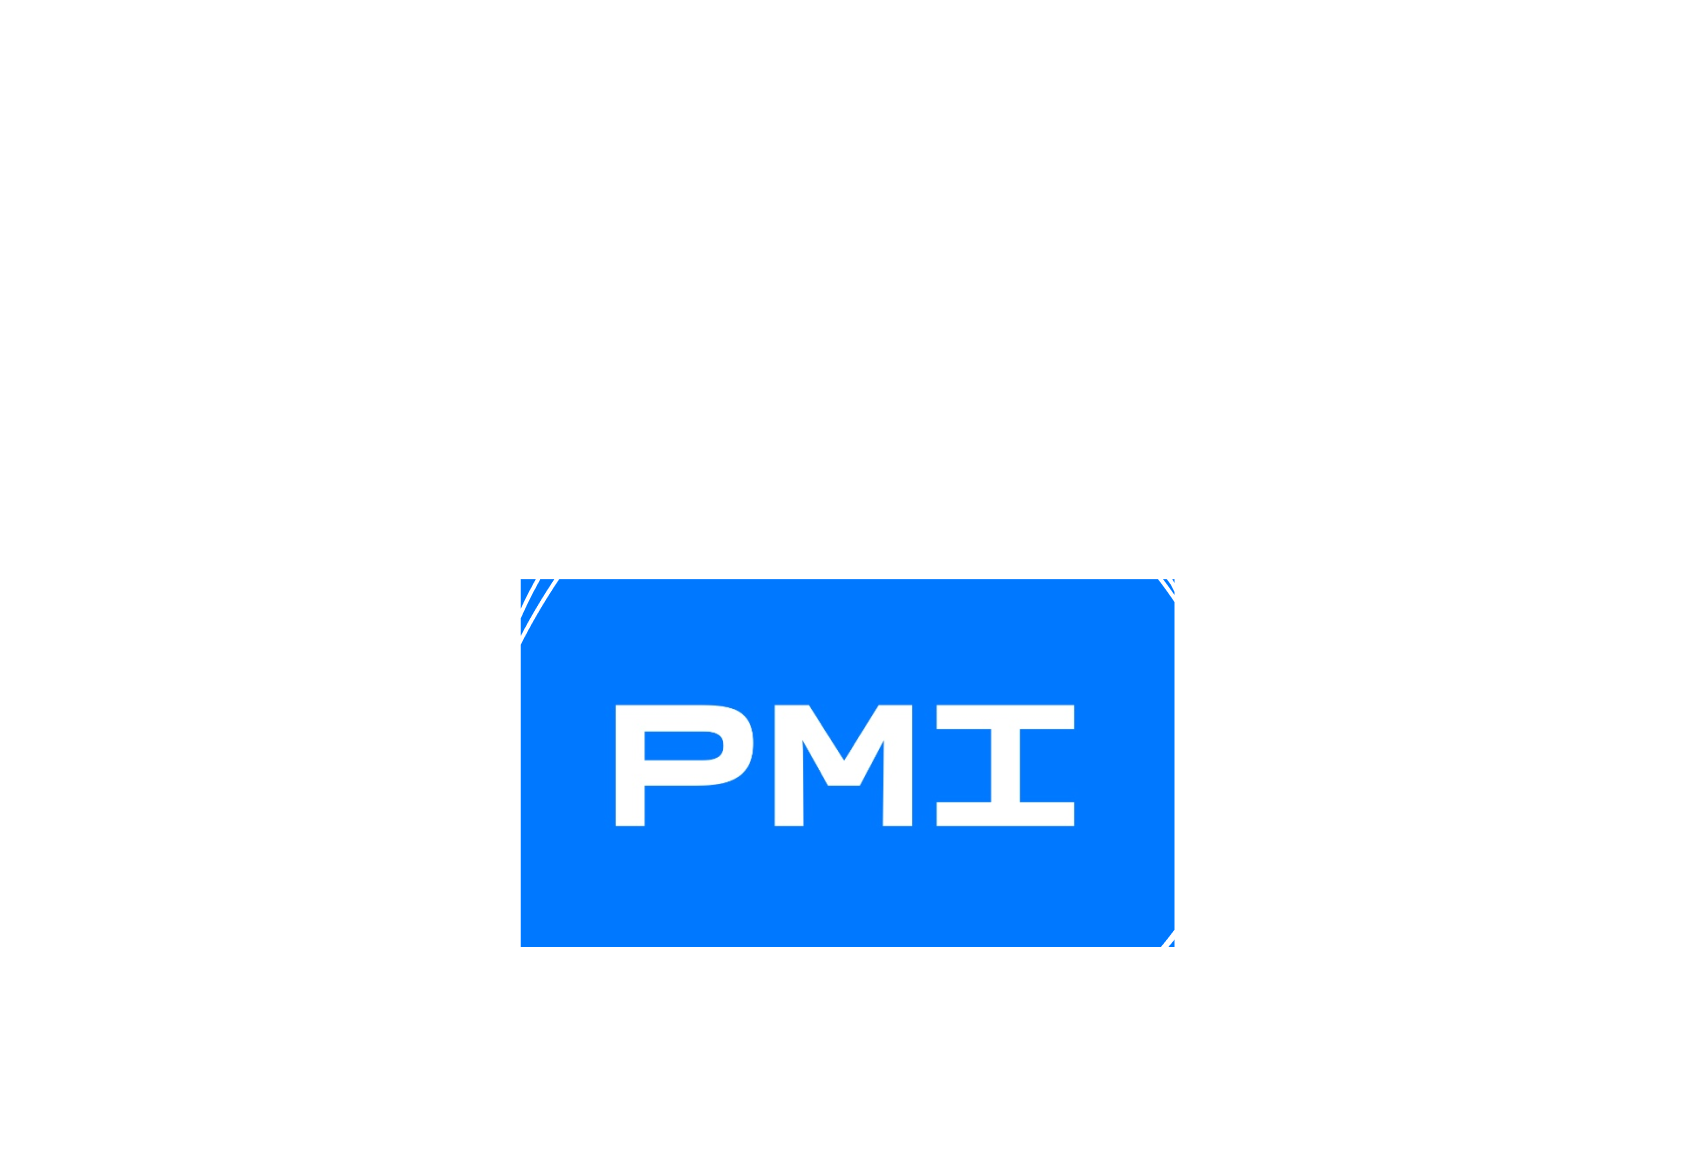 PMI Legal Community ルールメイキングの実践コミニティ